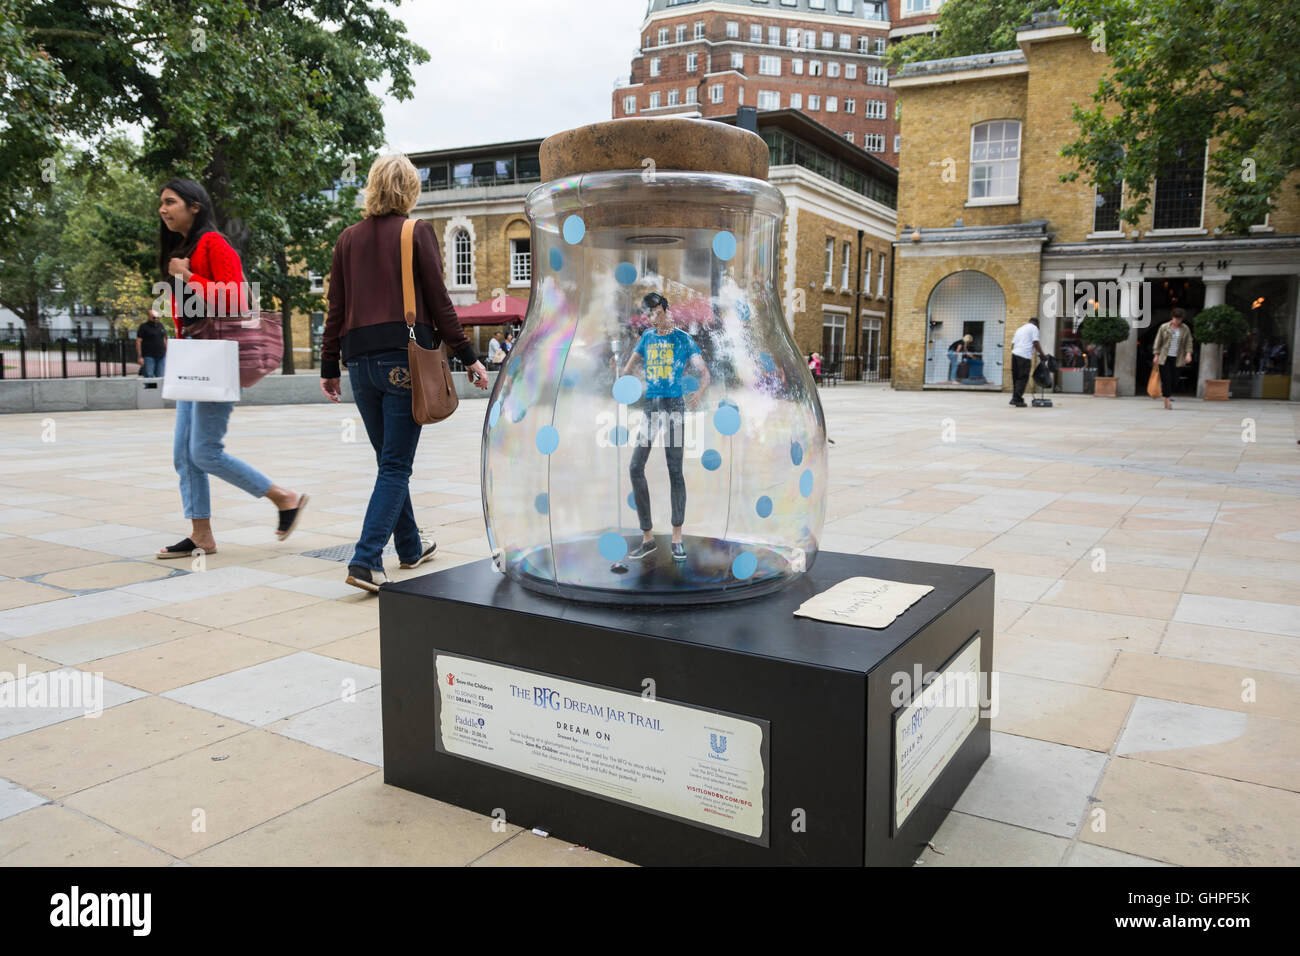 The BFG Dream Jar Trail on King's Road Chelsea outside the Saatchi Gallery, London, UK - Stock Image